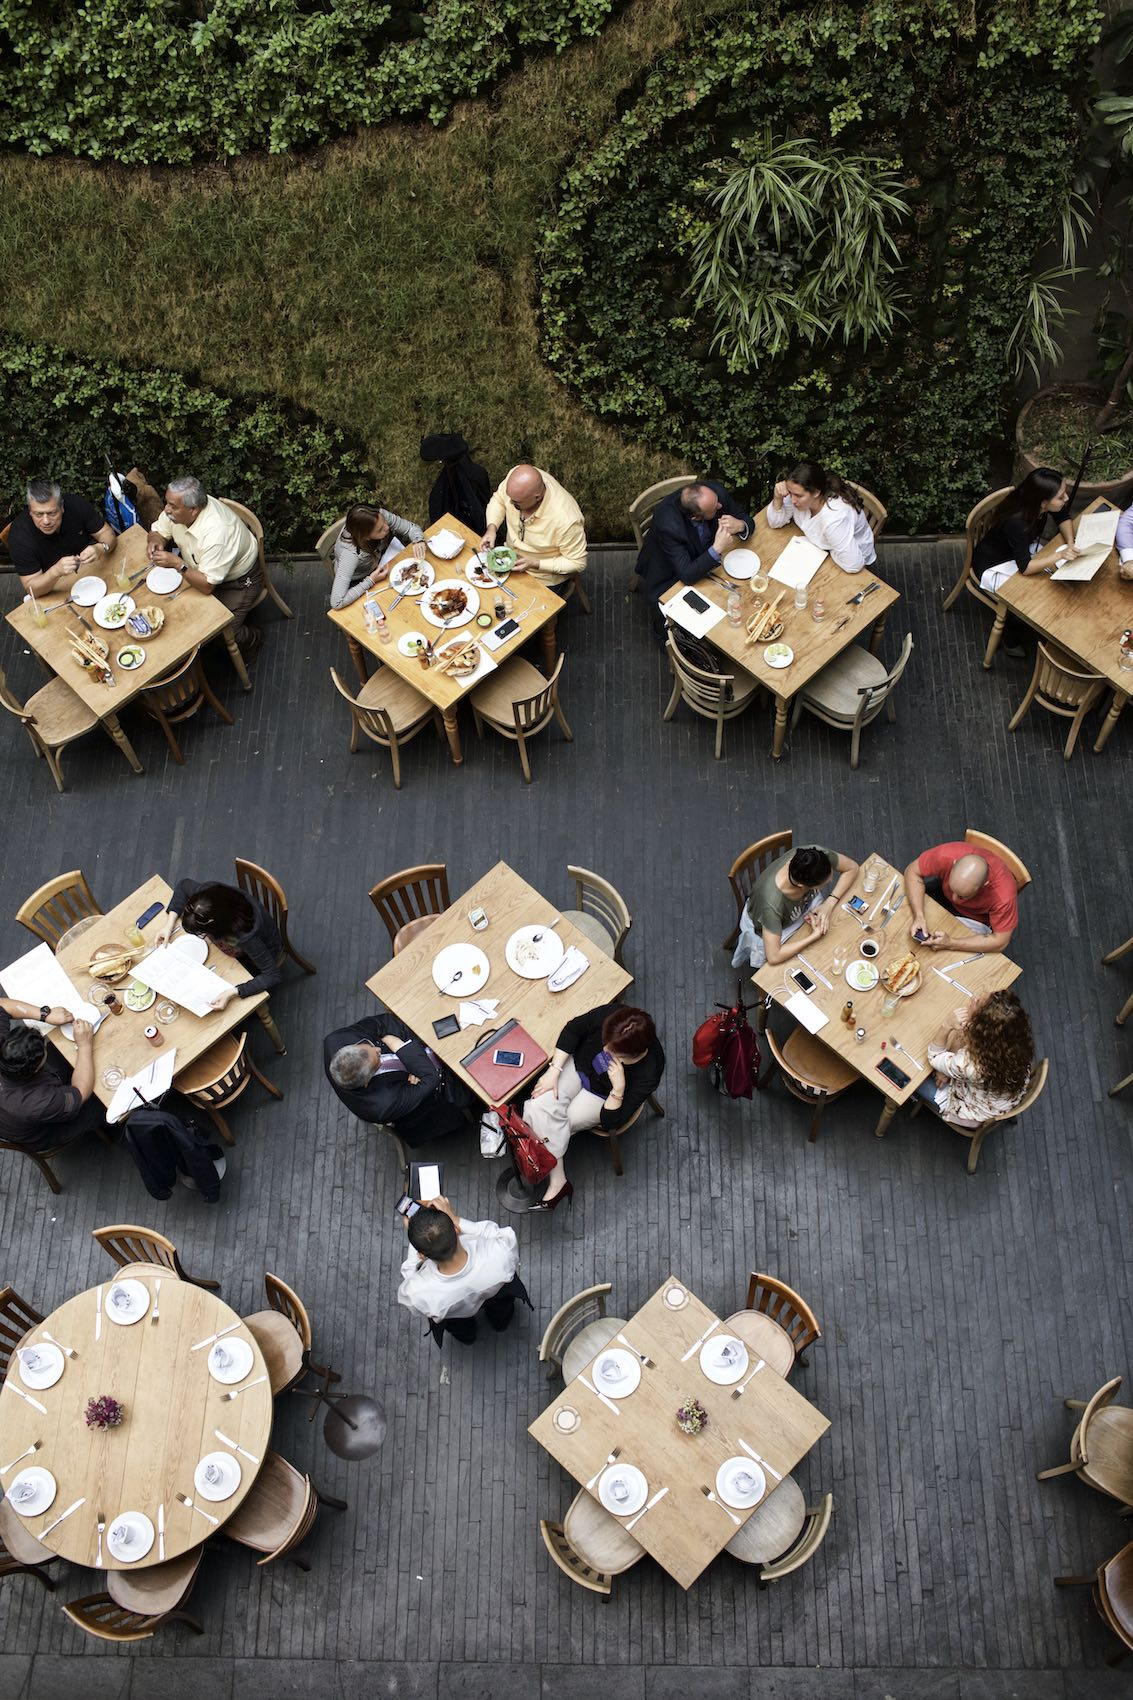 Jody Horton Photography - Guests dining in a restaurant in Mexico City.